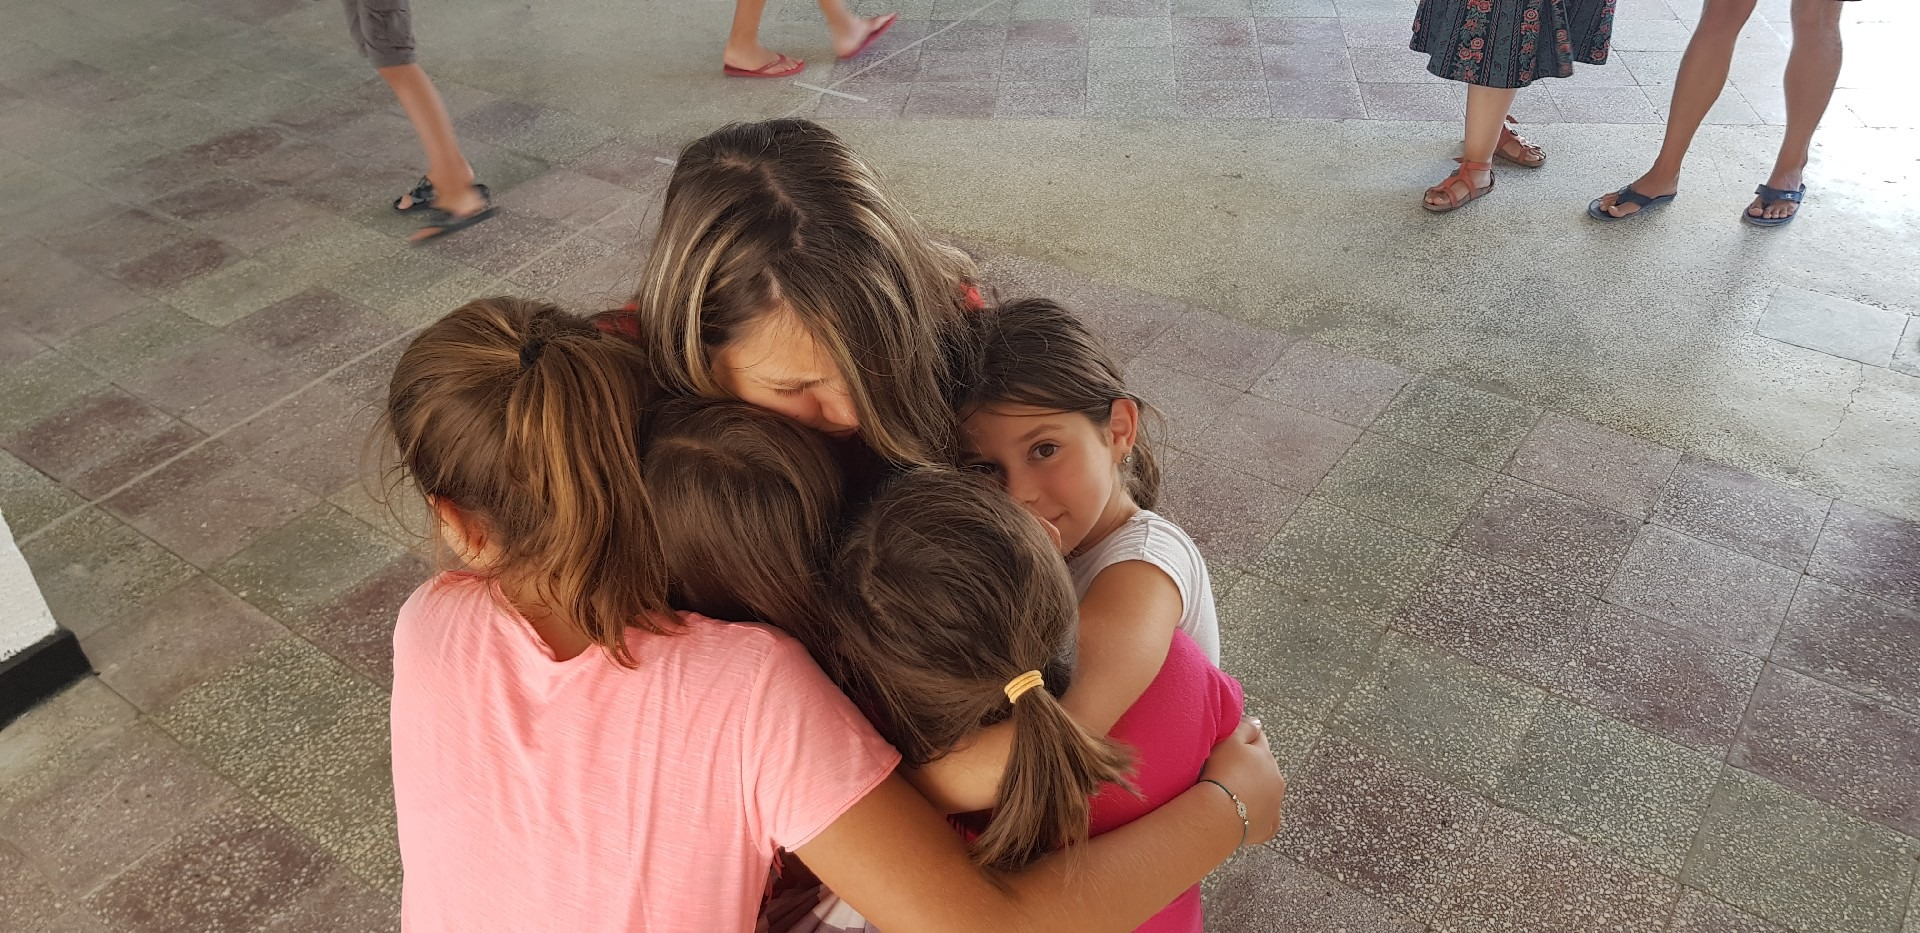 summer language camp in Bulgaria Z camp, Day 35 - group hug of girls